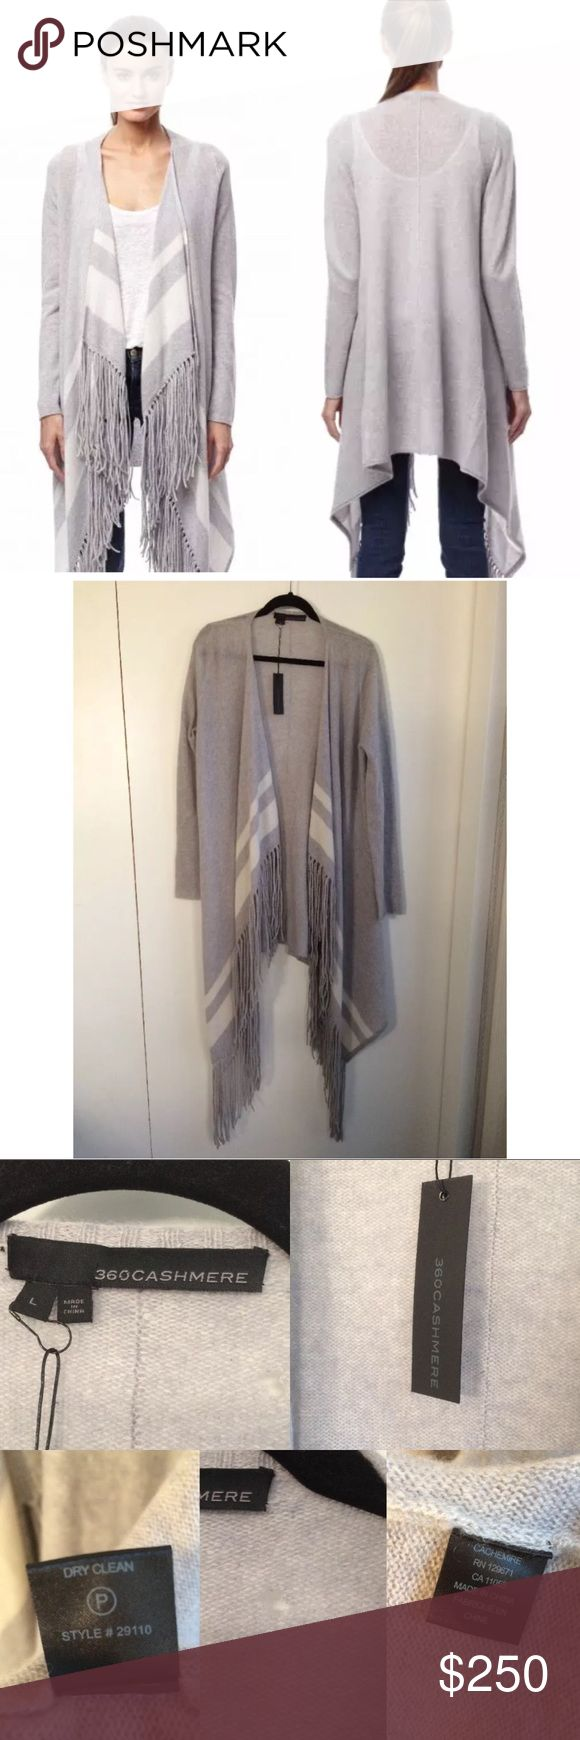 $460 360 Cashmere Eloise Waterfall Cardigan Size L $460 360 Cashmere Eloise Waterfall Cardigan  It's new with tag but has a hole near the tag, see photos   360 cashmere Eloise grey/cream waterfall cardigan.  This is the 'Eloise' Long waterfall cardigan by american designer 360 cashmere. This features bold stripes, fringe trimming and an open-front.   Model is wearing a size Large  Fabric: 100% cashmere Dry clean/specialist cleaner. 360 Cashmere Sweaters Cardigans